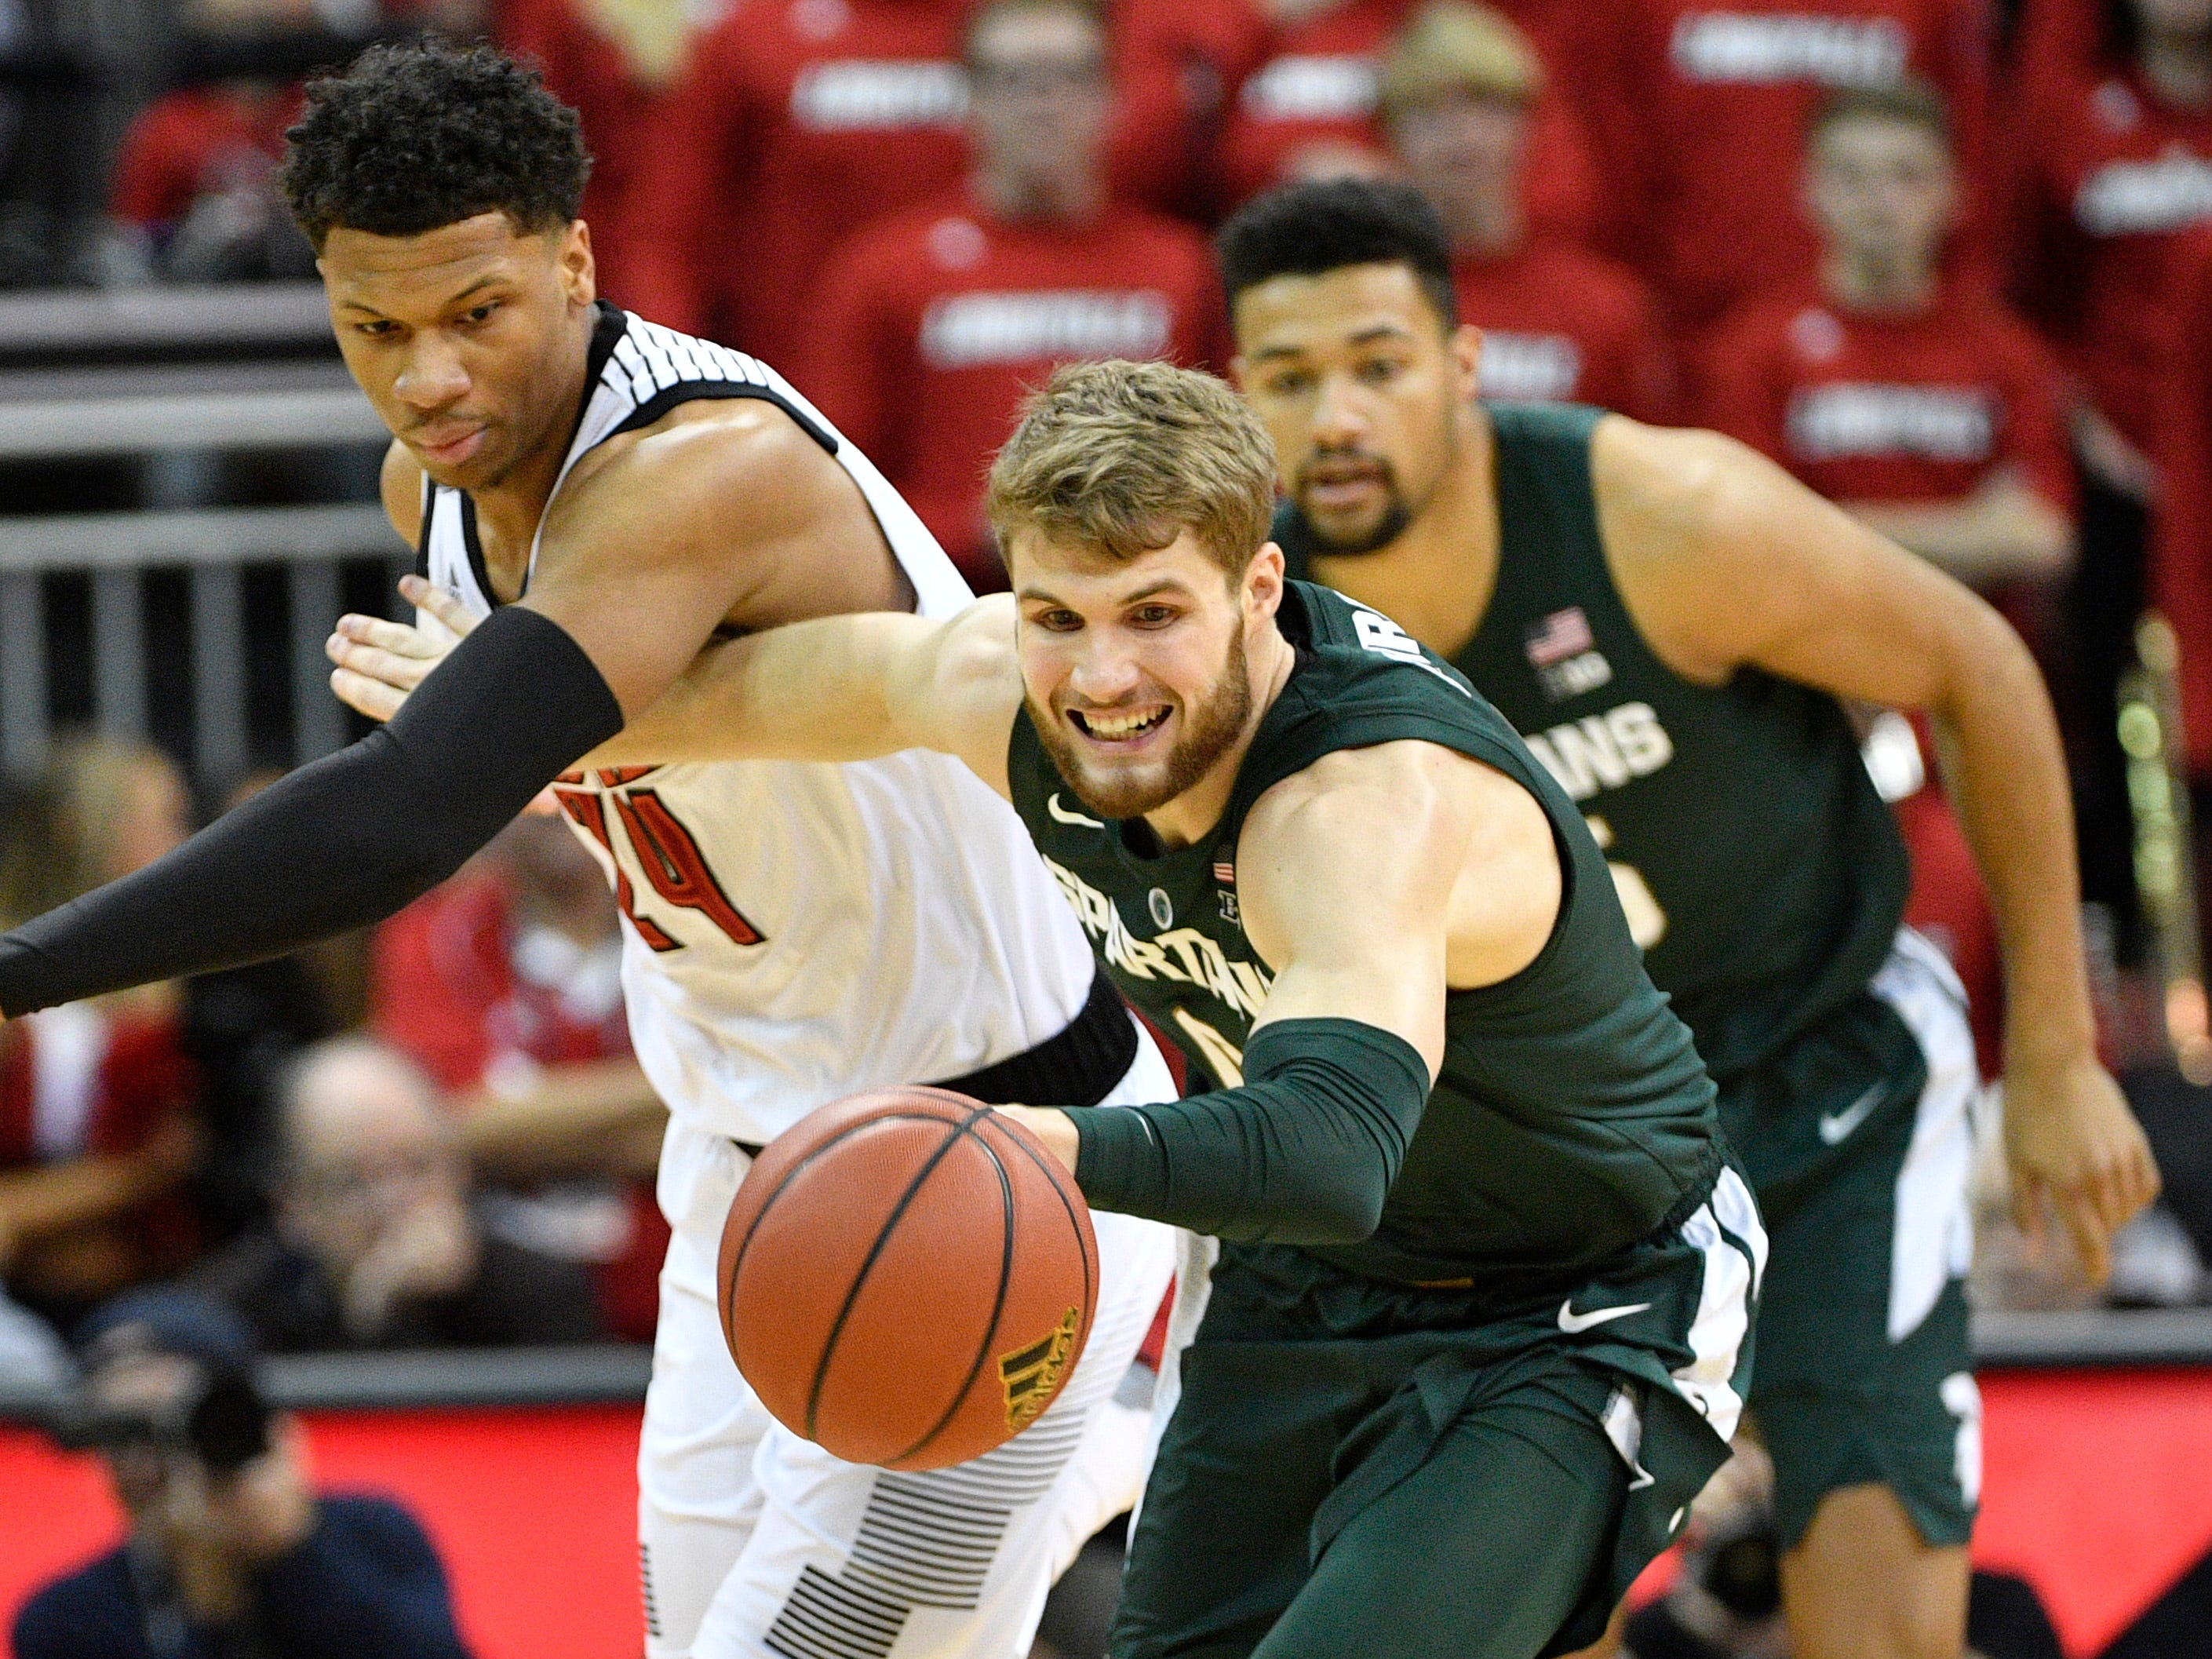 Michigan State Spartans forward Kyle Ahrens (0) scrambles for a loose ball with Louisville Cardinals forward Dwayne Sutton (24) during the first half at KFC Yum! Center.